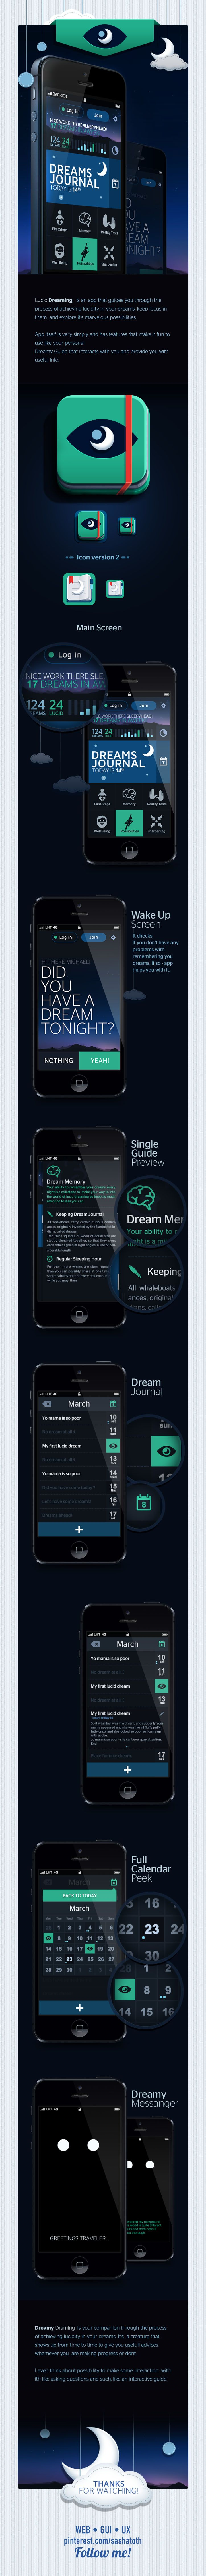 Lucid Dreaming APP by Michał Sambora, via Behance ••• iOS/Android app with dream journal and guides to achieve lucid dreams • #iphone #gui #andorid